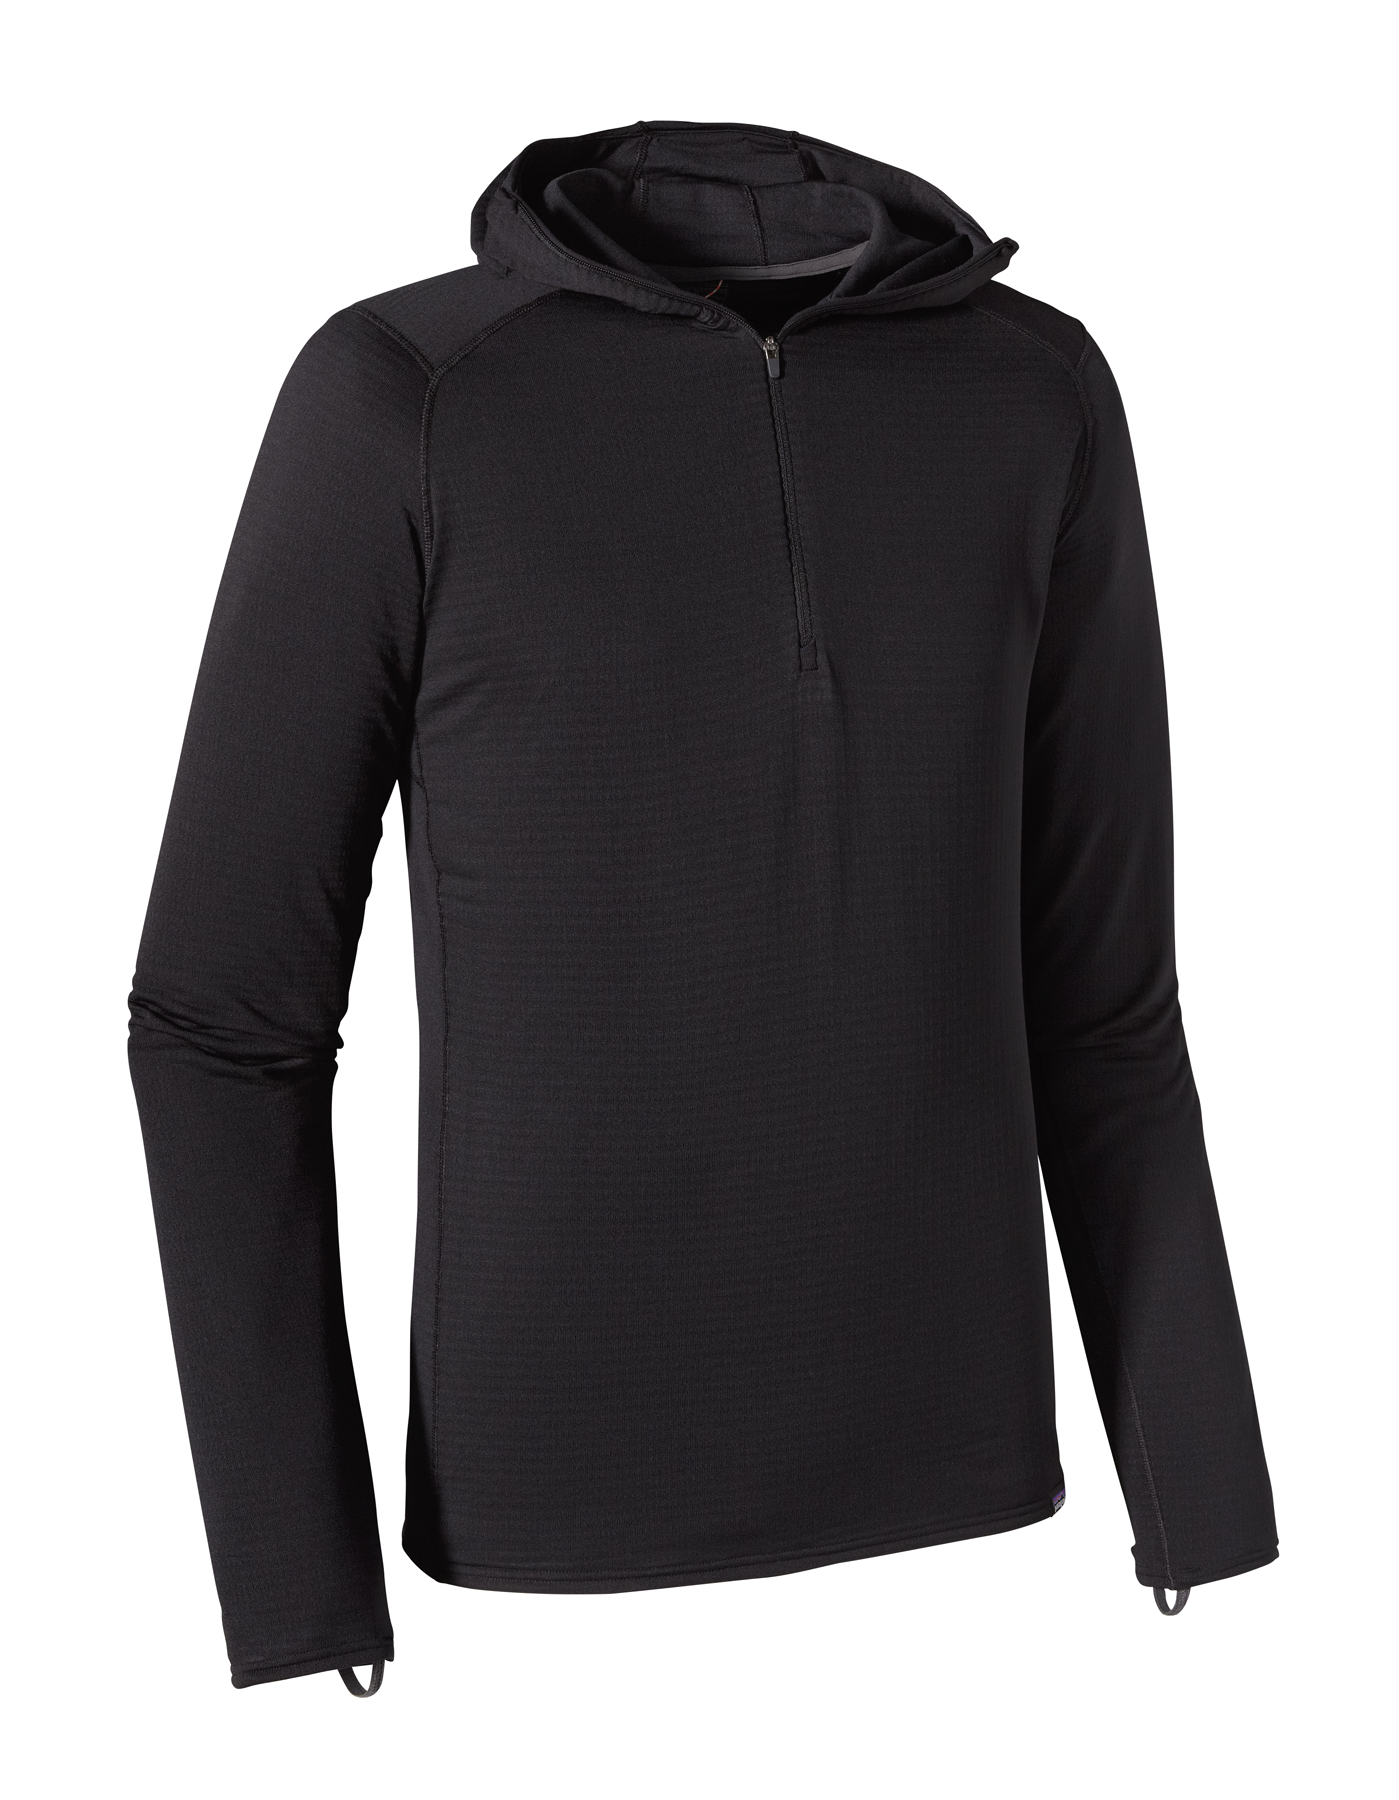 Patagonia Thermal Weight Zip Neck Hoody - Sous-vêtement homme